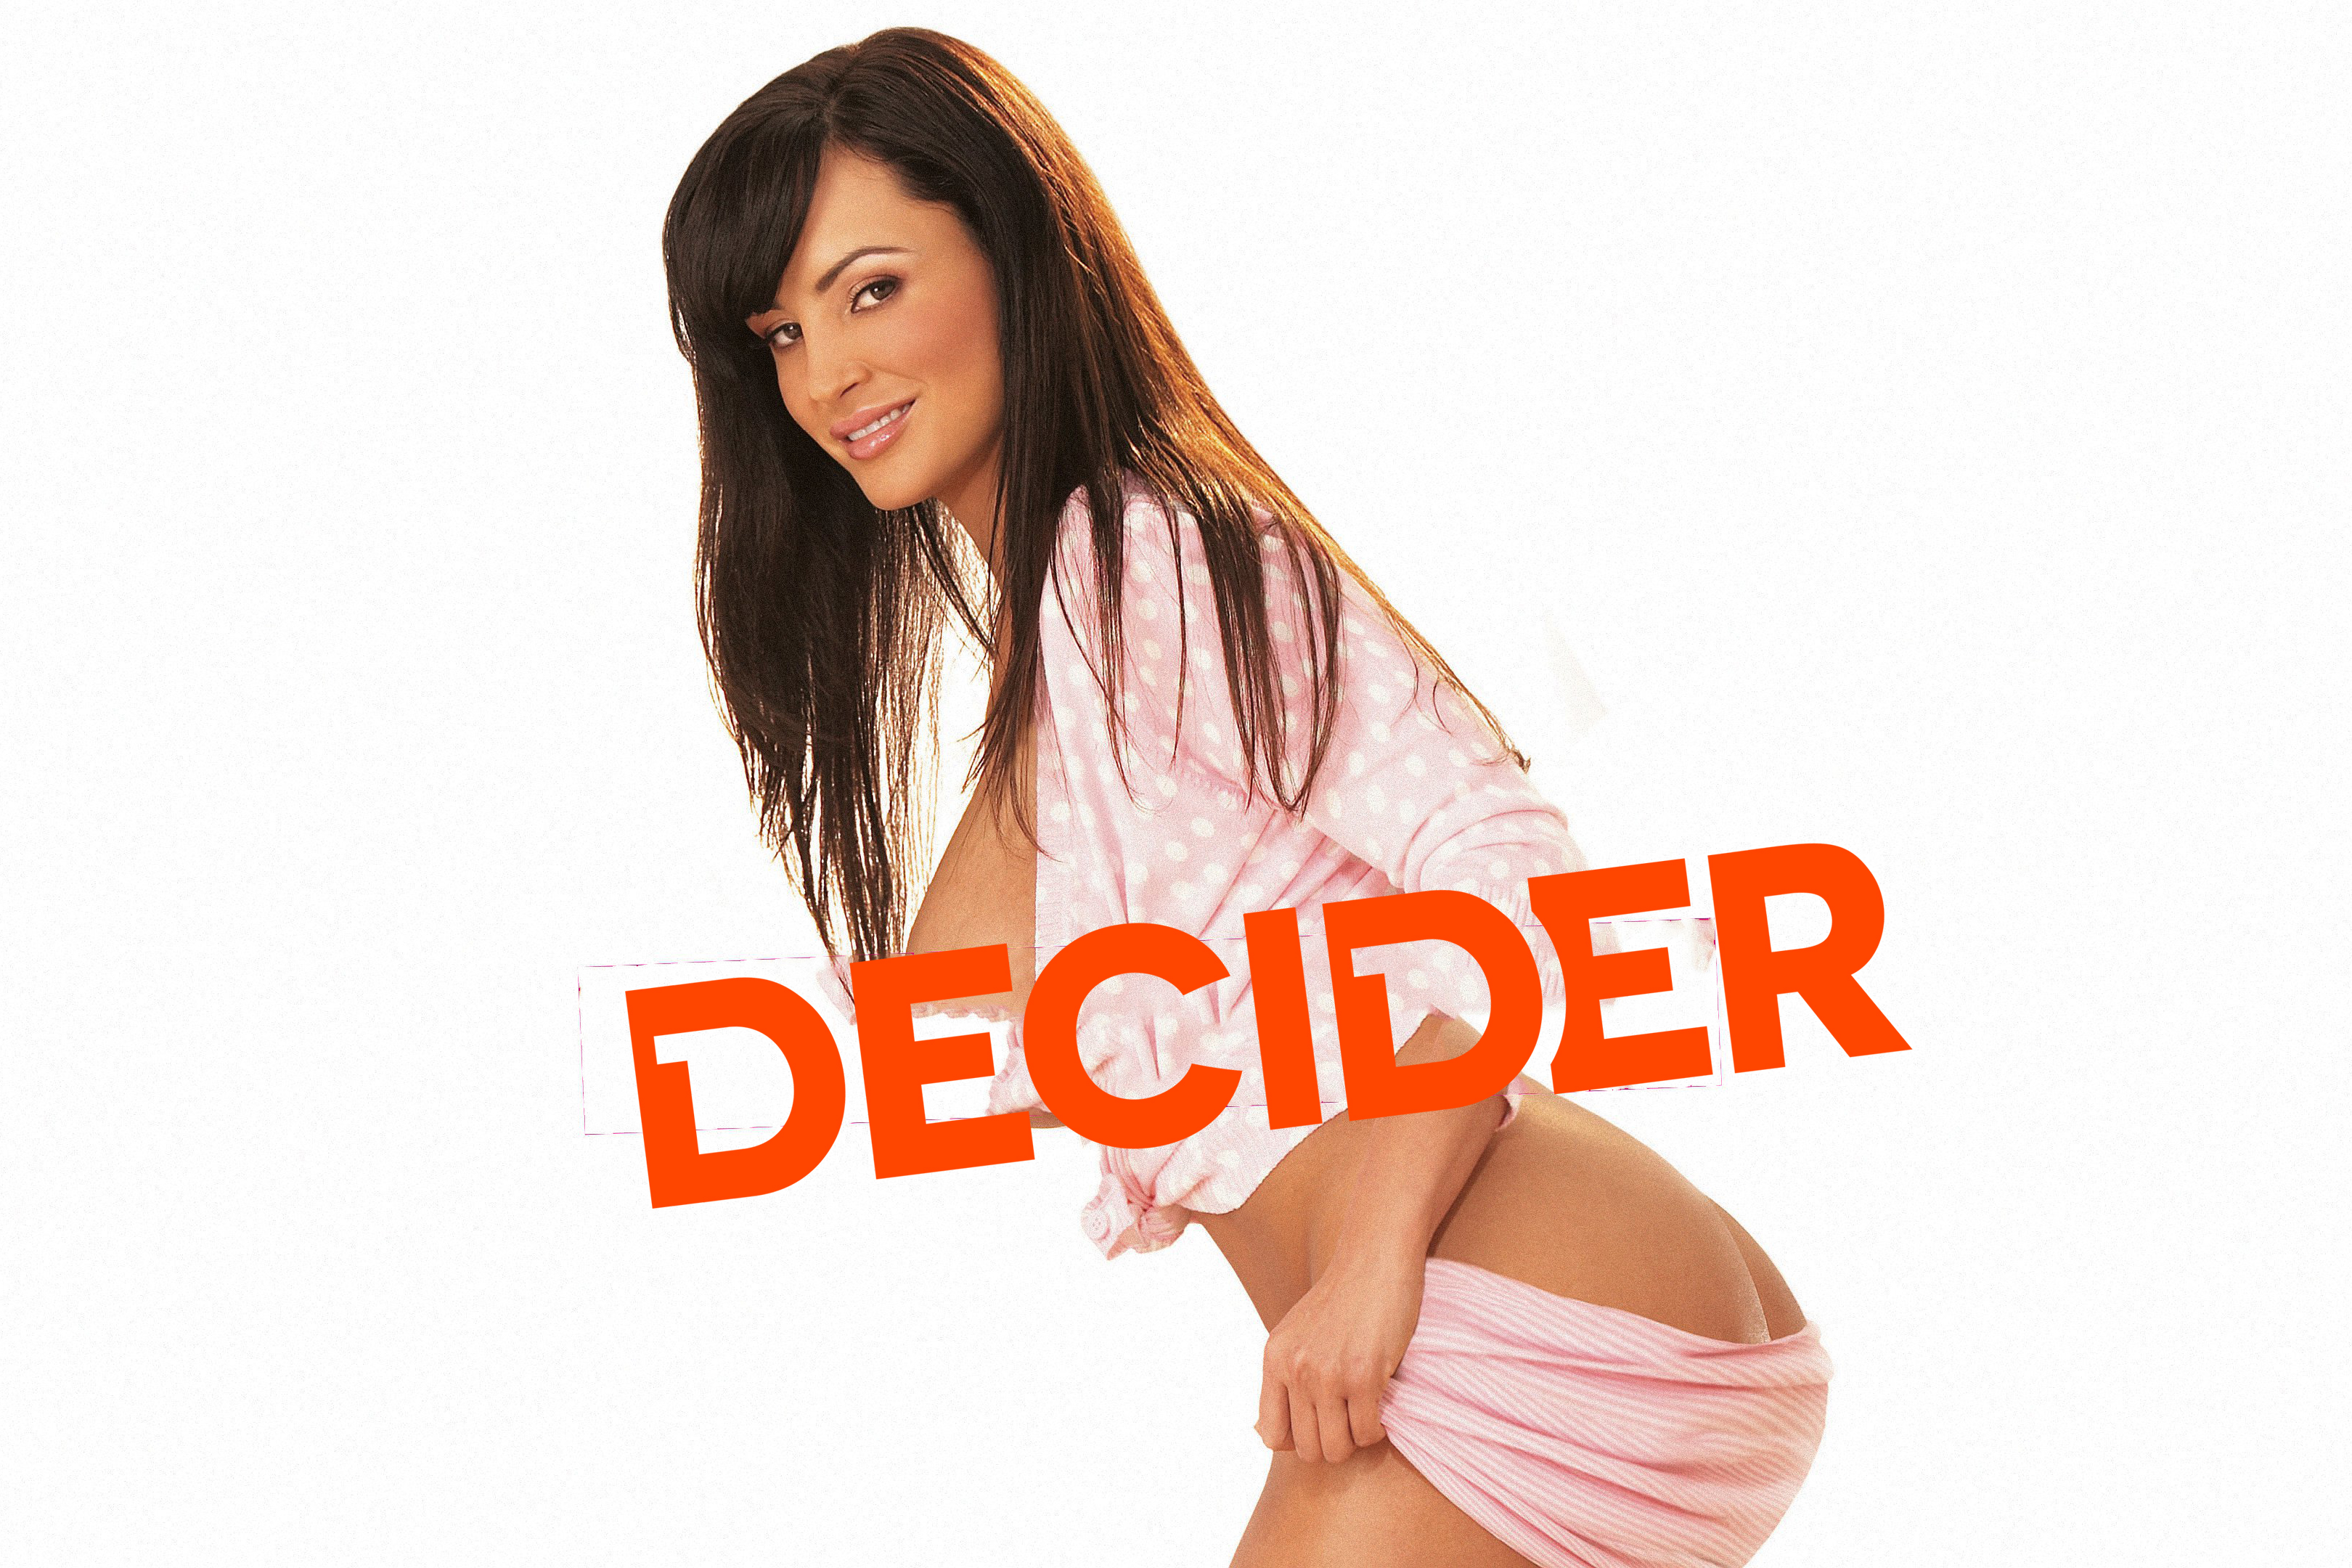 After Porn Ends Documental Online the 10 sexiest documentaries about sex | decider